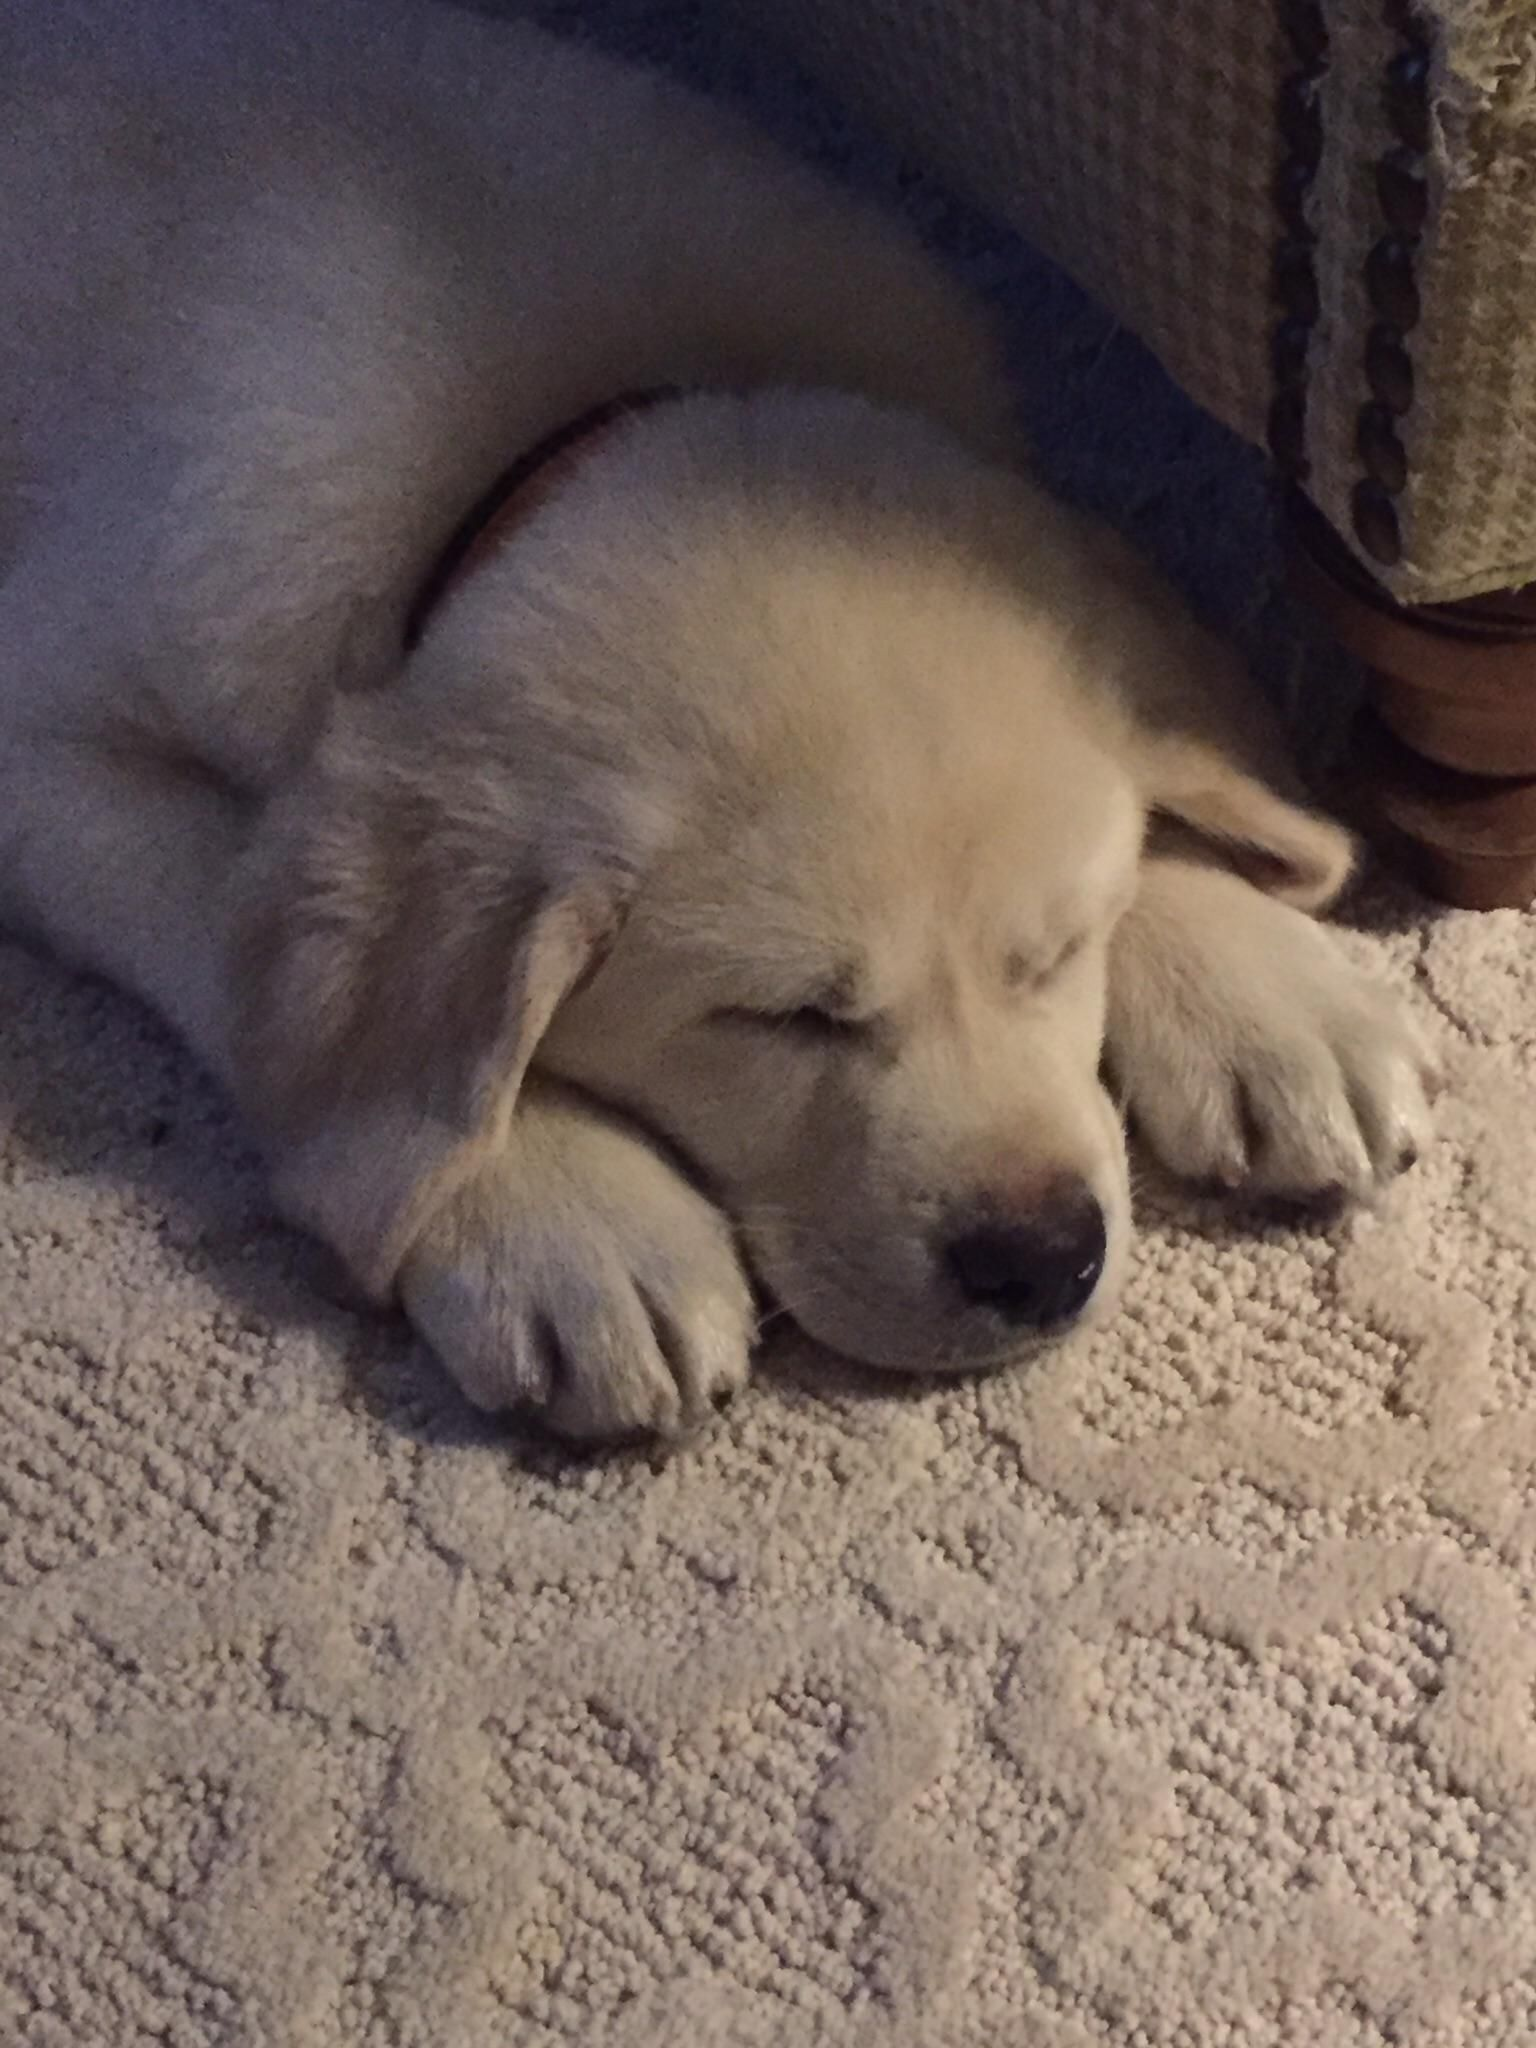 Throwback to when my dog was a sleepy little puppy ift